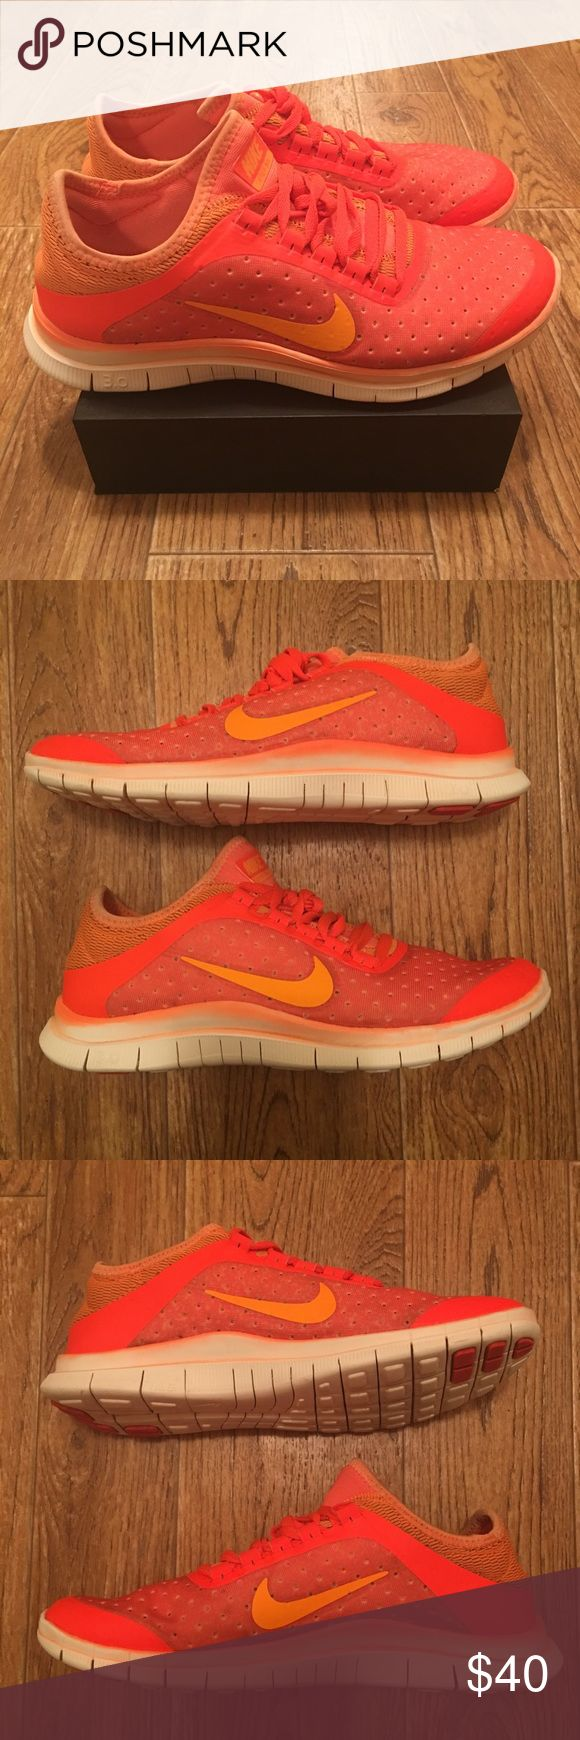 [Nike] Free 3.0 V5 Women's Running Shoes (Used) Used Nike Free 3.0 V5 womens running shoes. Good condition overall, material a little dingy from wear (see photos). Women's size 8    **Offers Accepted** Nike Shoes Athletic Shoes